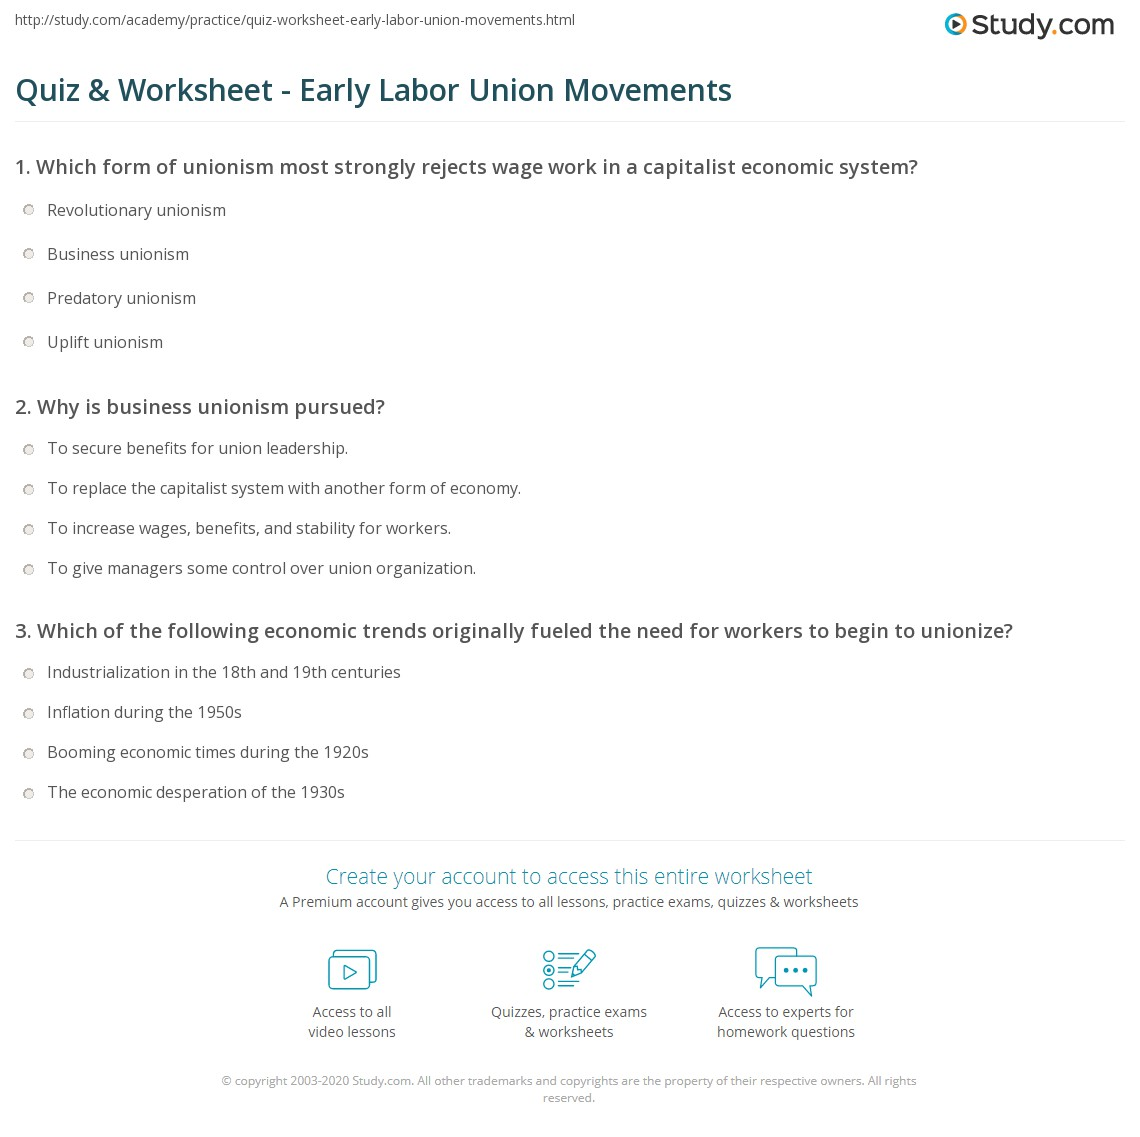 quiz worksheet early labor union movements. Black Bedroom Furniture Sets. Home Design Ideas